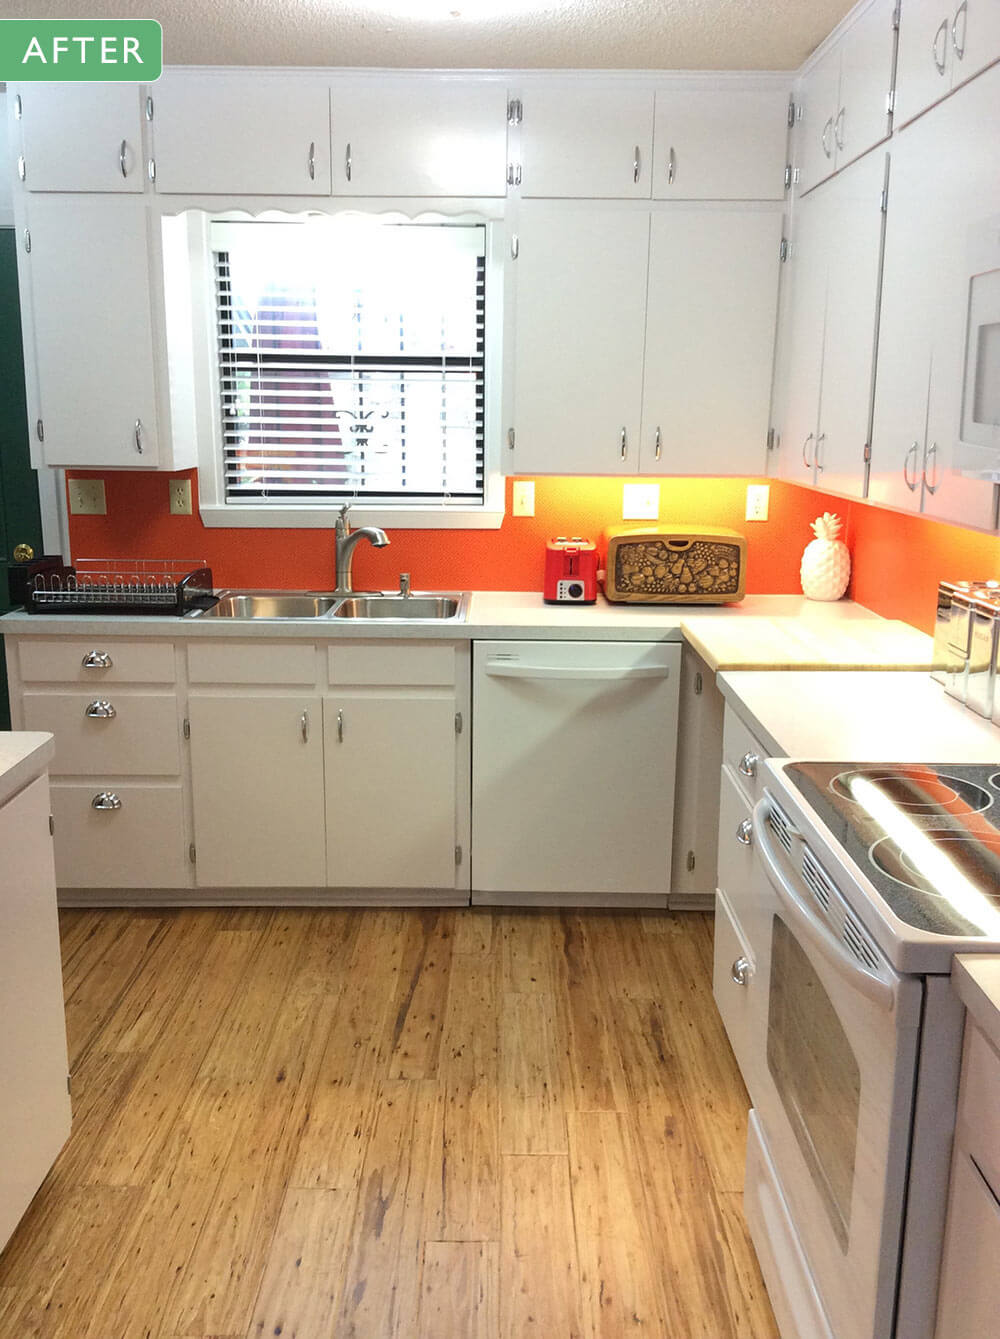 Mary And John Remodel Their 1980s Kitchen With A Fresh White Retro